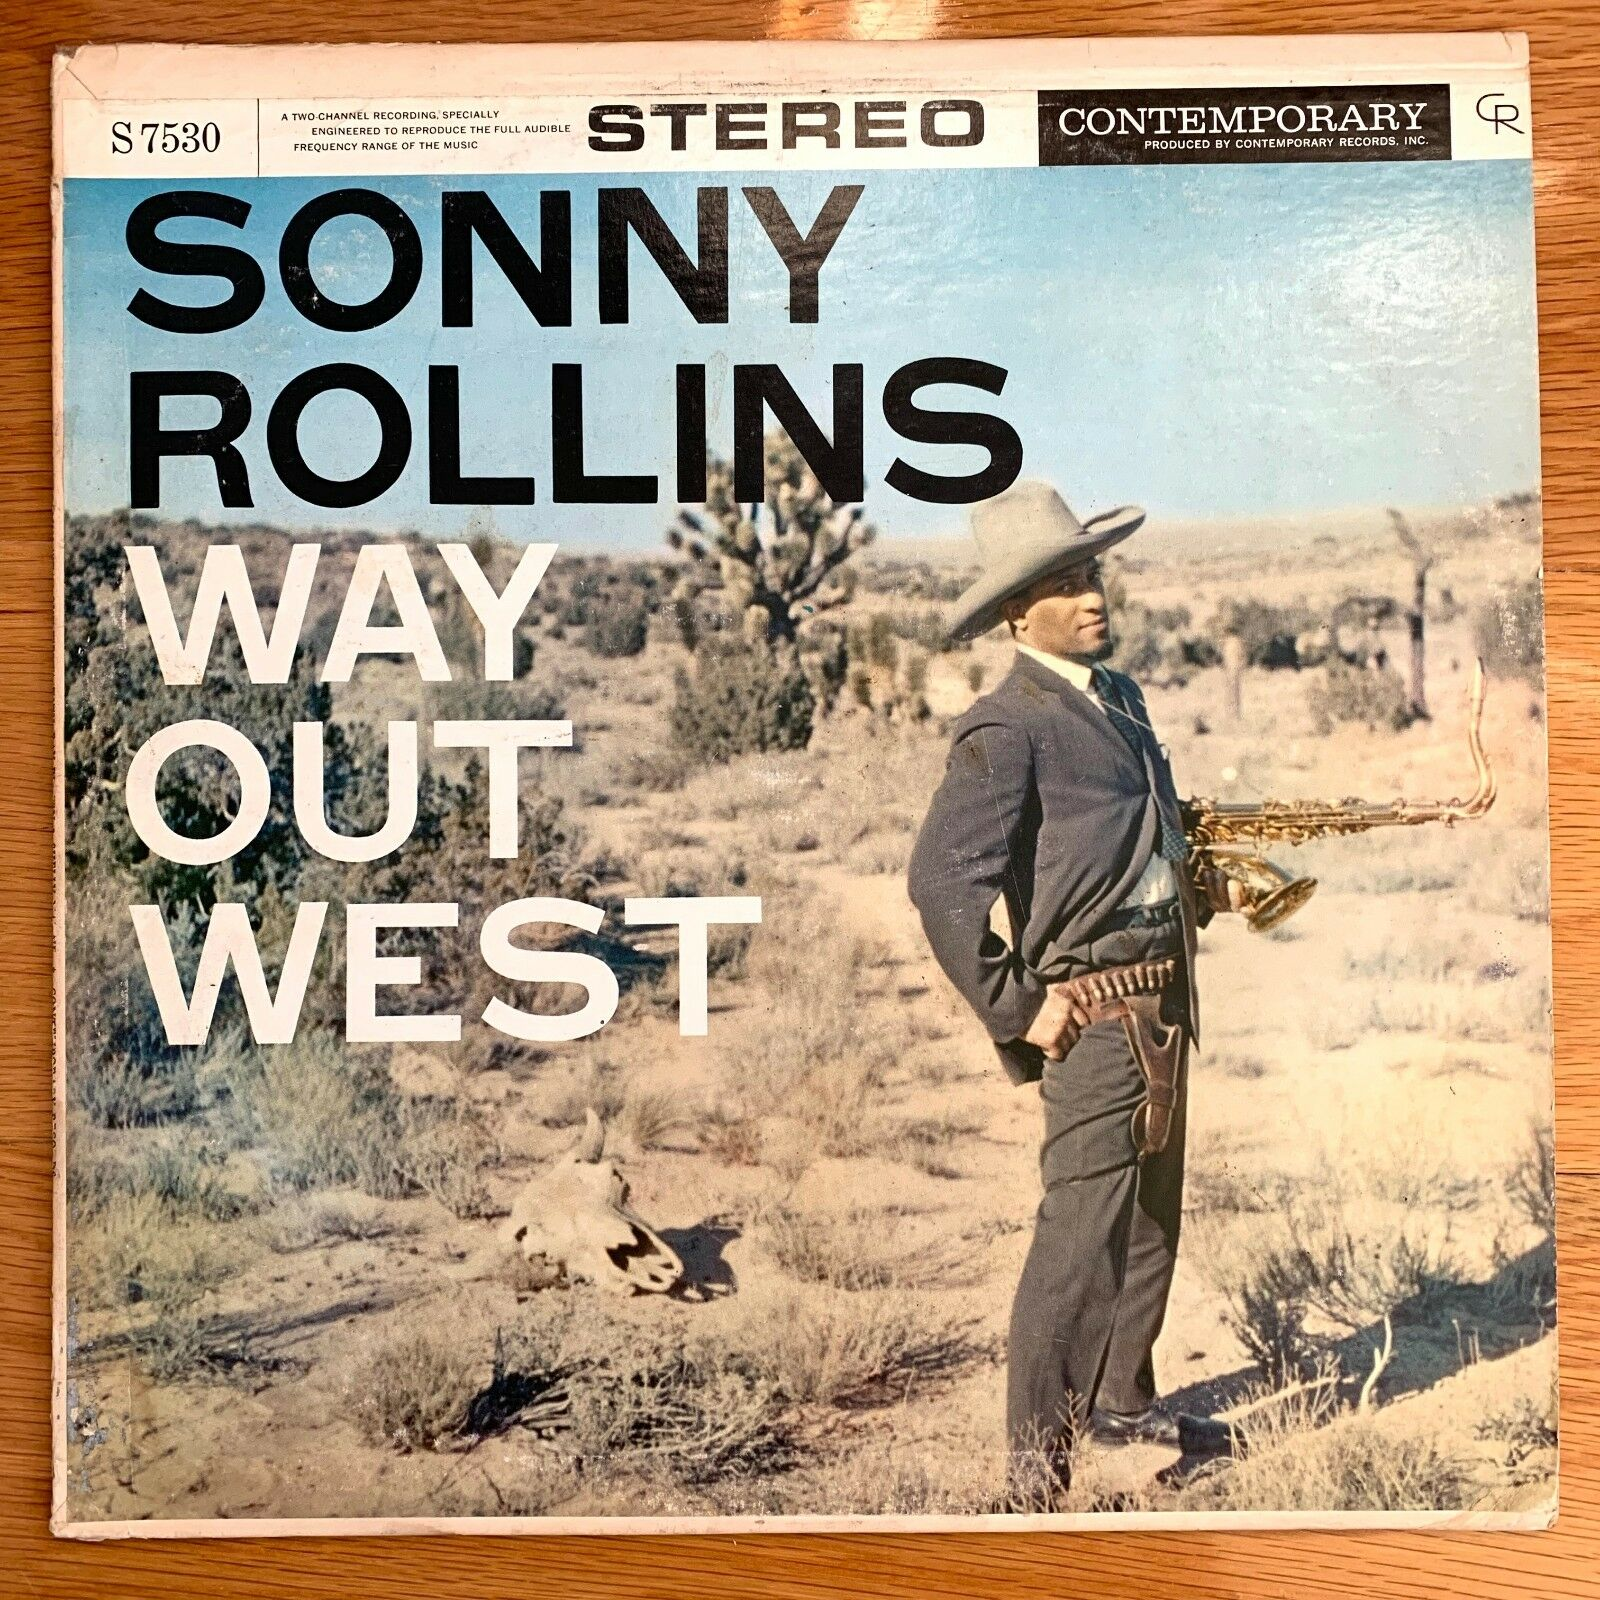 SONNY ROLLINS Way Out West Contemporary LP Stereo S7530 DG VG+